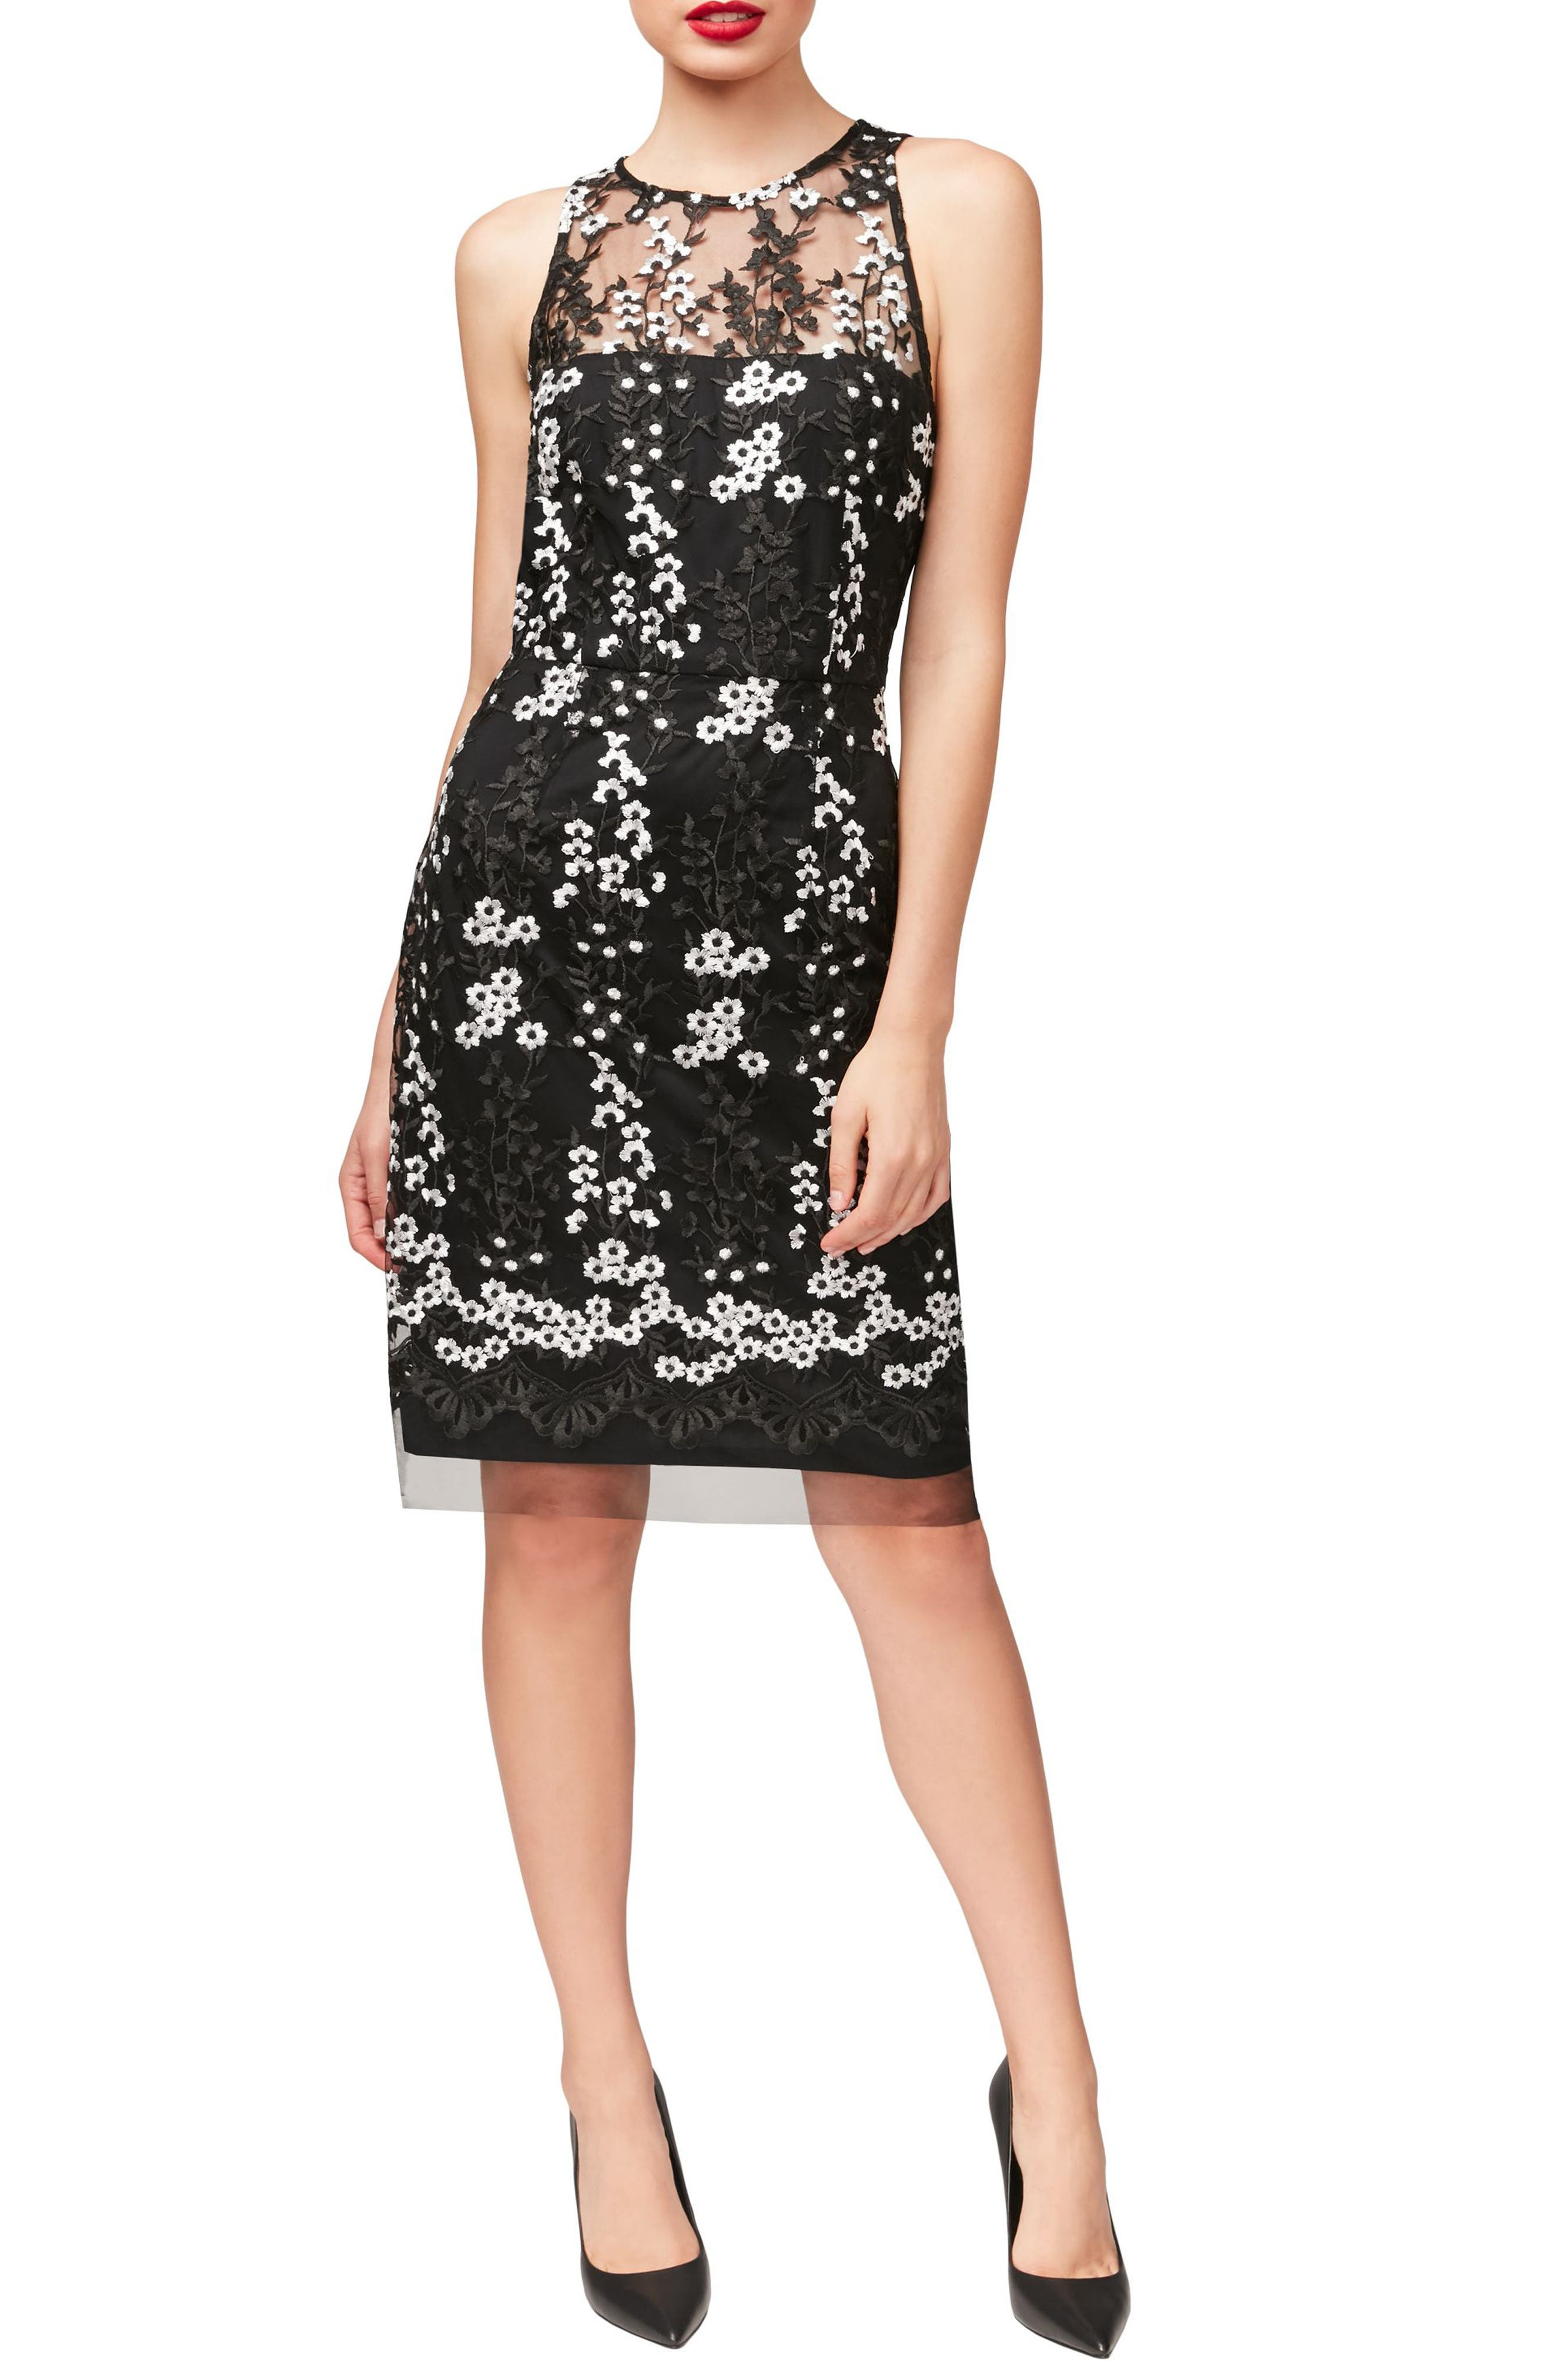 Alternate Image 1 Selected - Betsey Johnson Floral Lace Sheath Dress